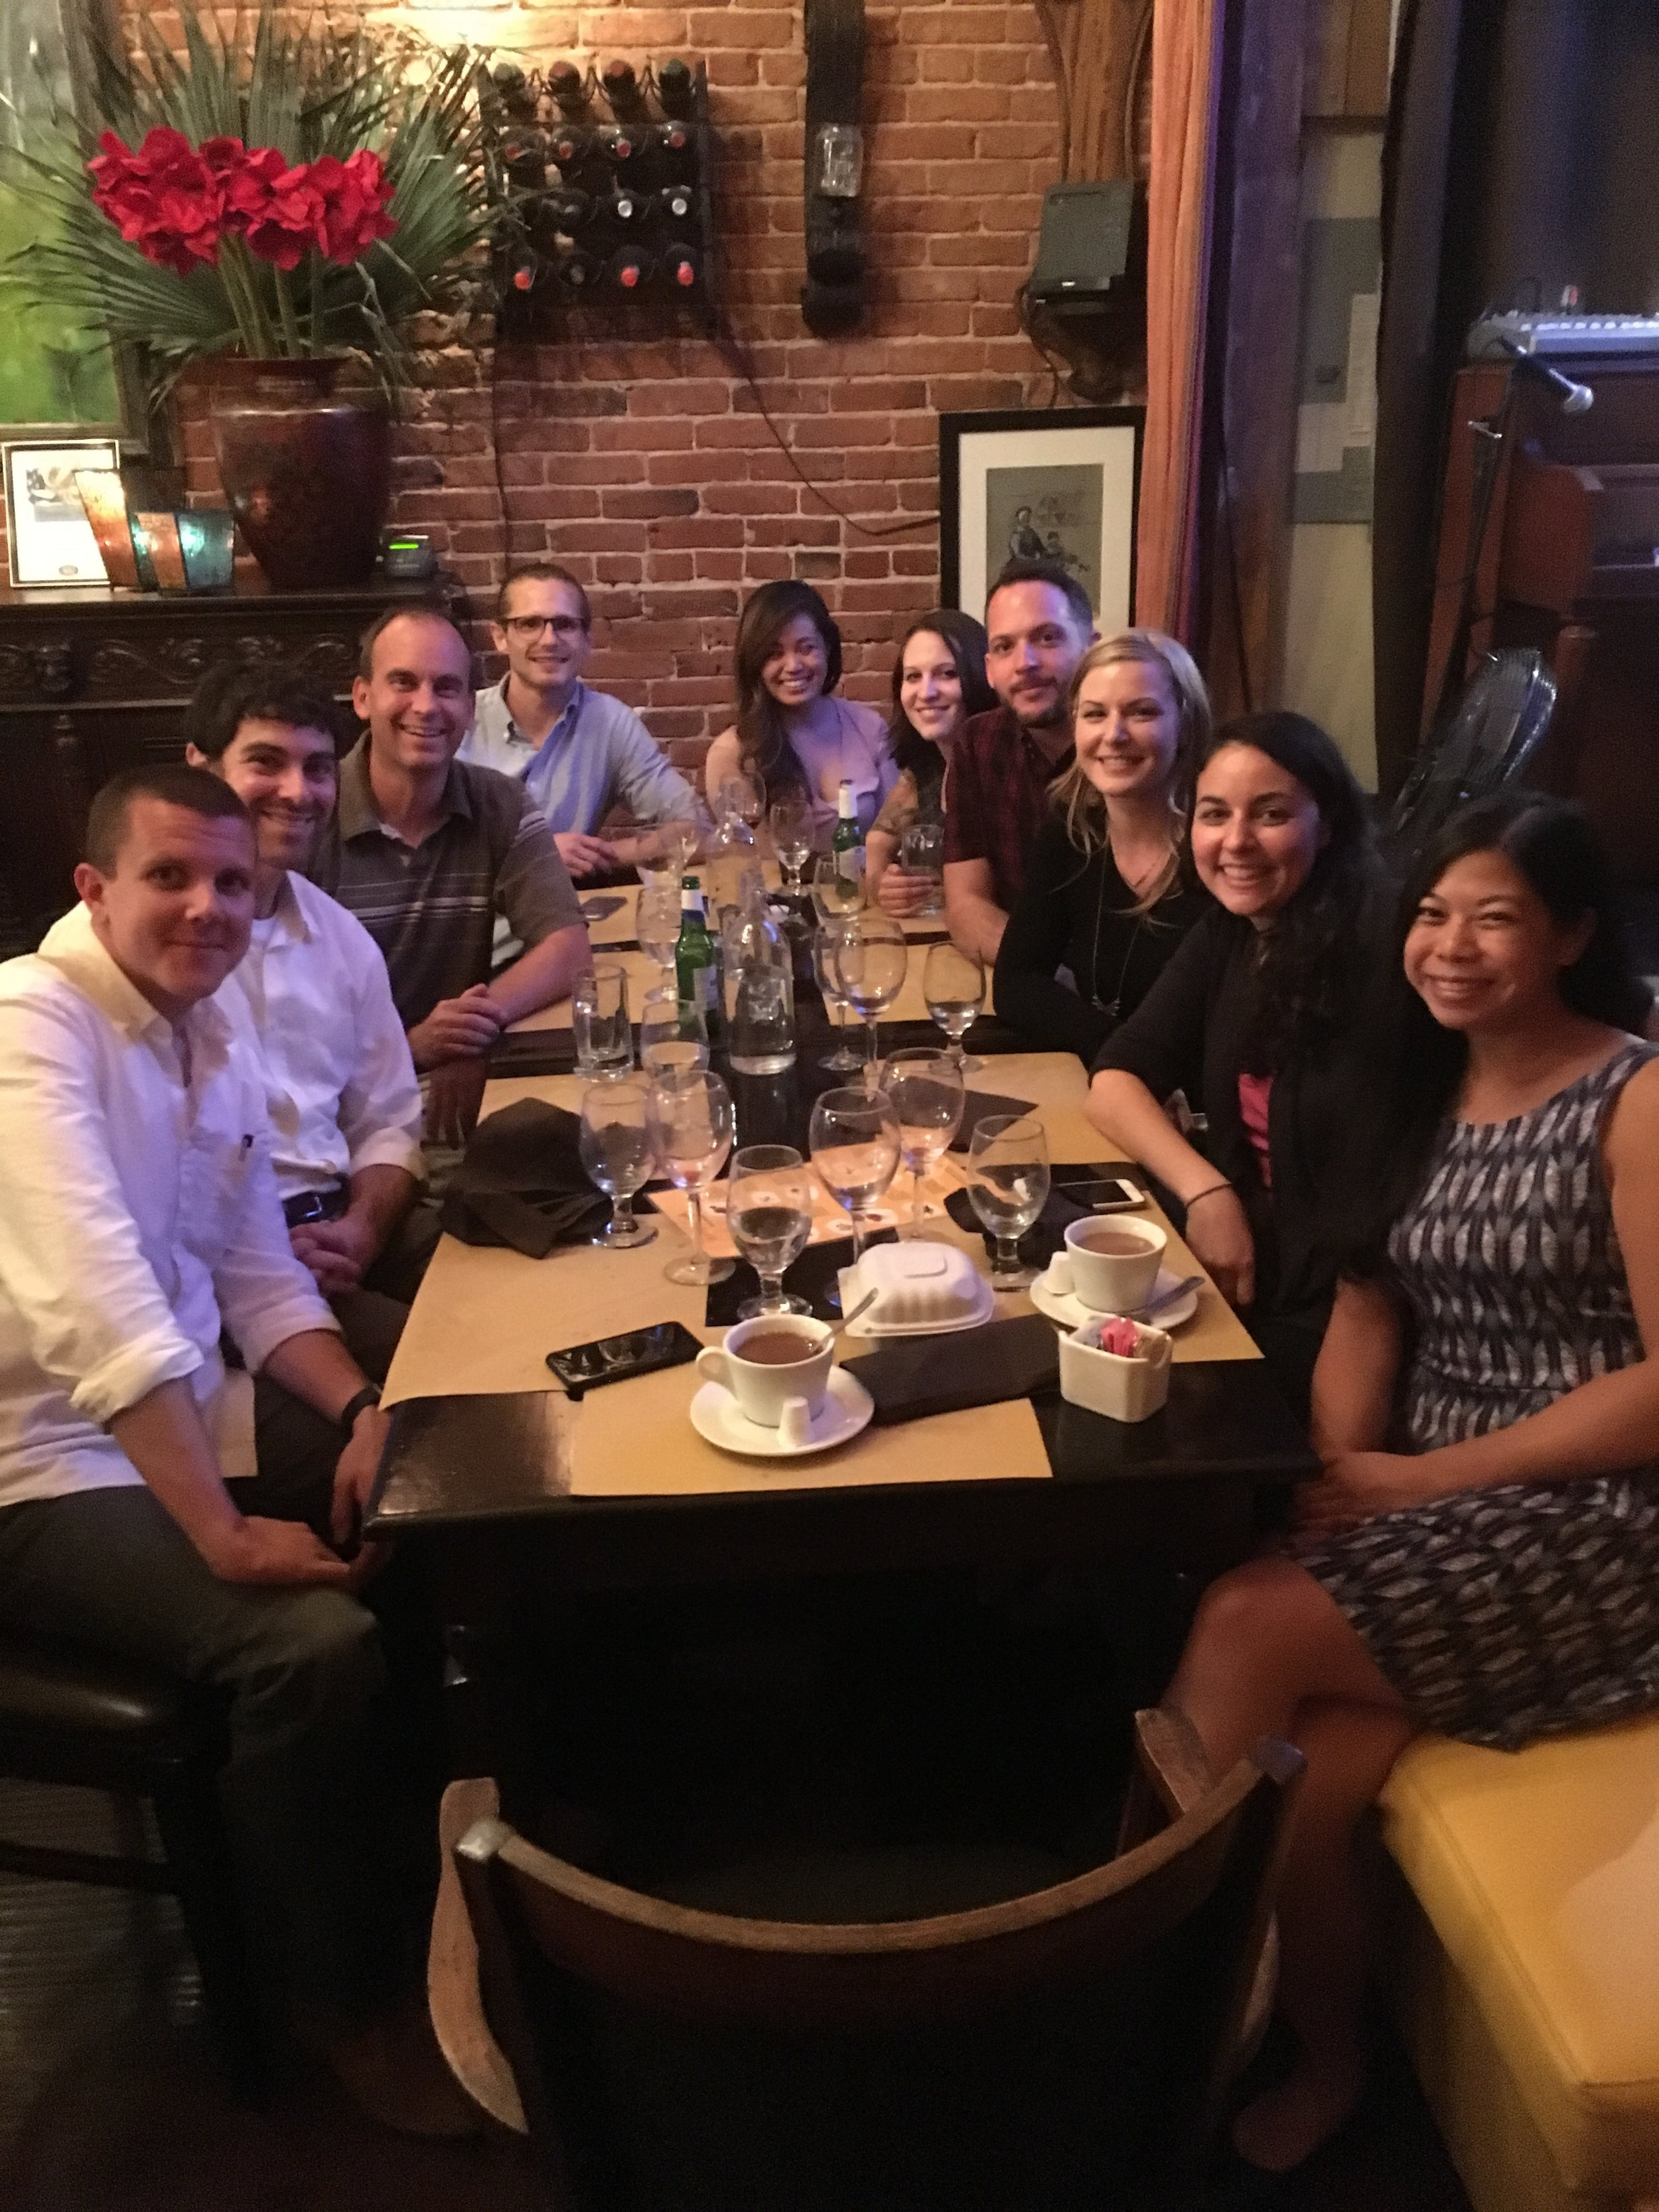 Kinney Lab Family Dinner with current and former lab members. Left to right: Michael Langhardt, Jon Sabbagh, Dr. Kinney, Austin Boren, Krystal Belmonte, Stephanie Nagl, Andrew Murtishaw, Monica Bolton, Chelcie Heaney, Christy Magcalas